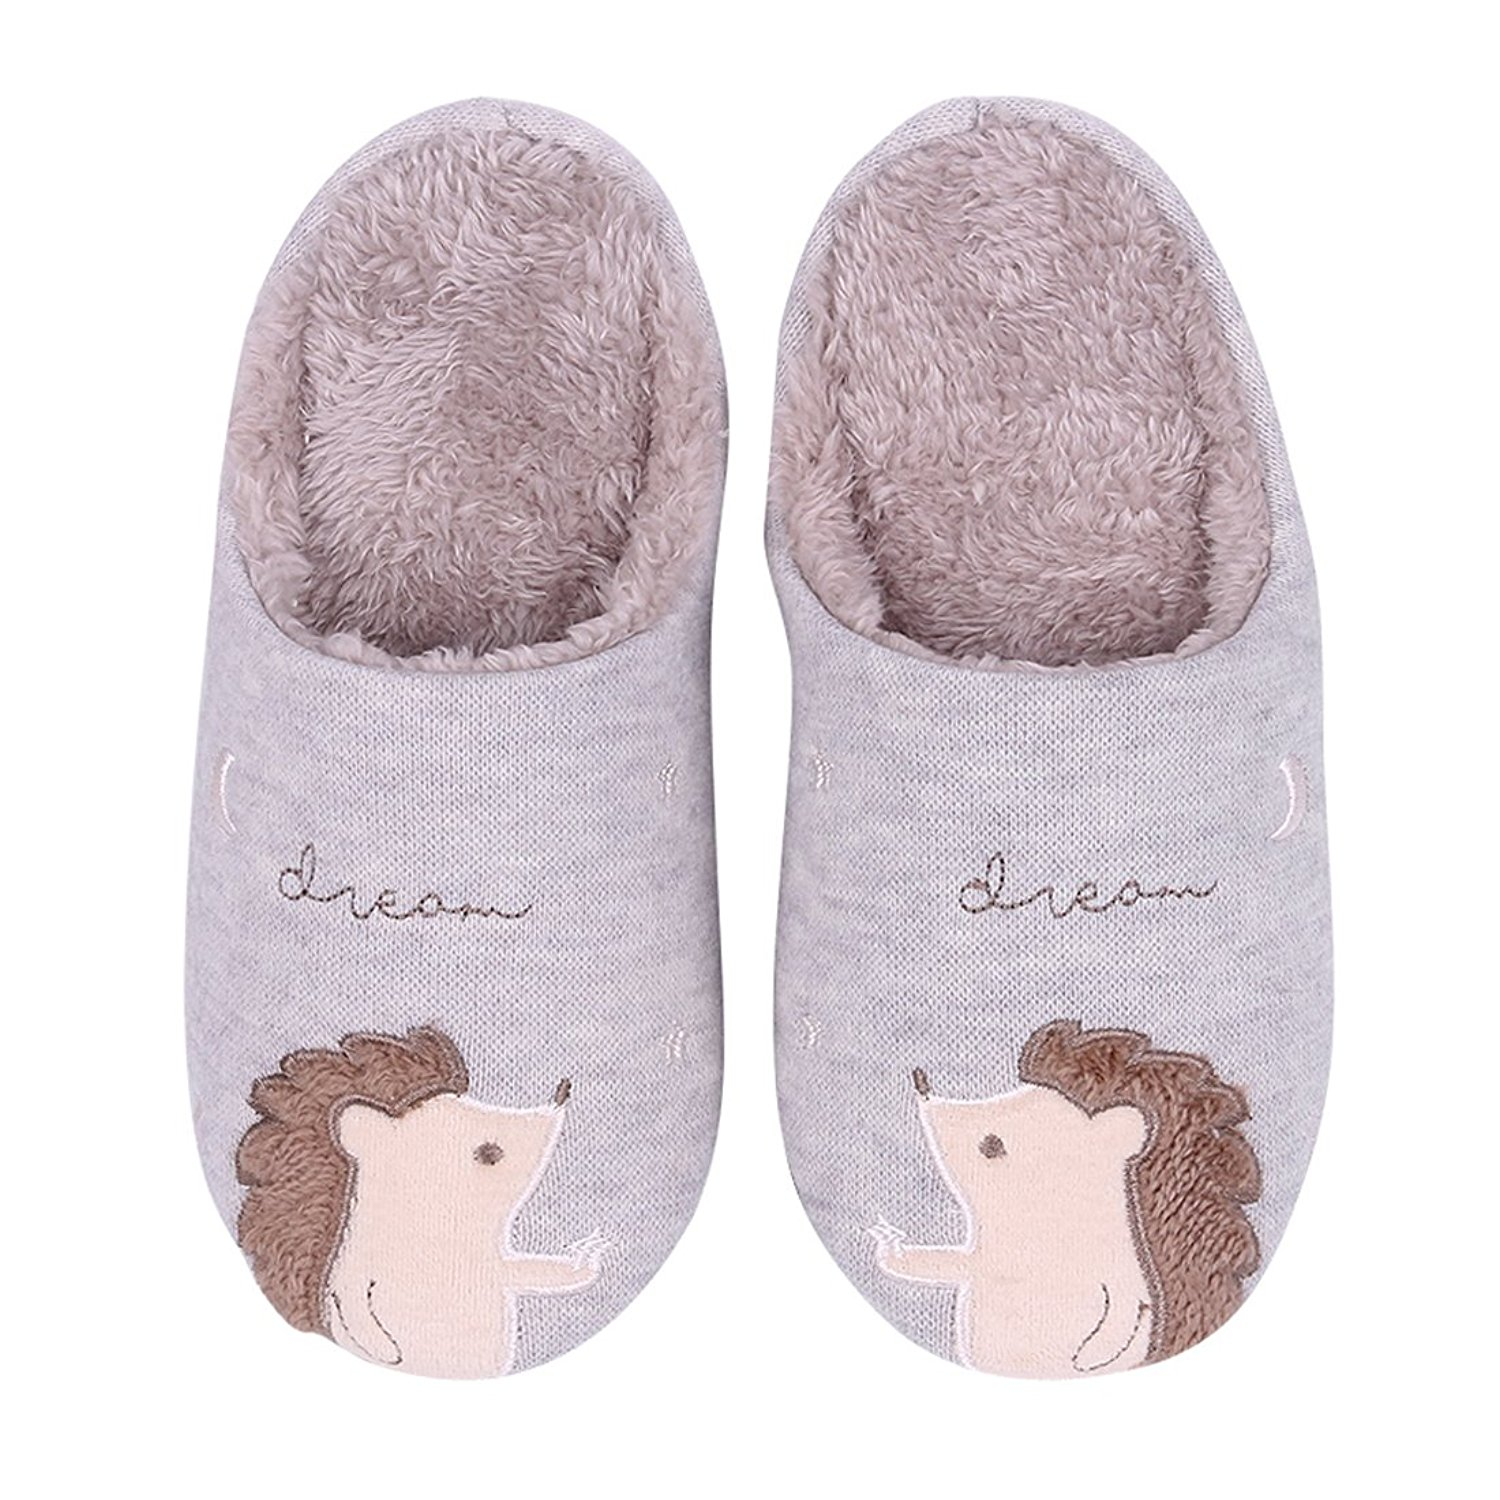 Cattior Kids Animal Cute Leather Slippers Bedroom House Shoes Boys Girls